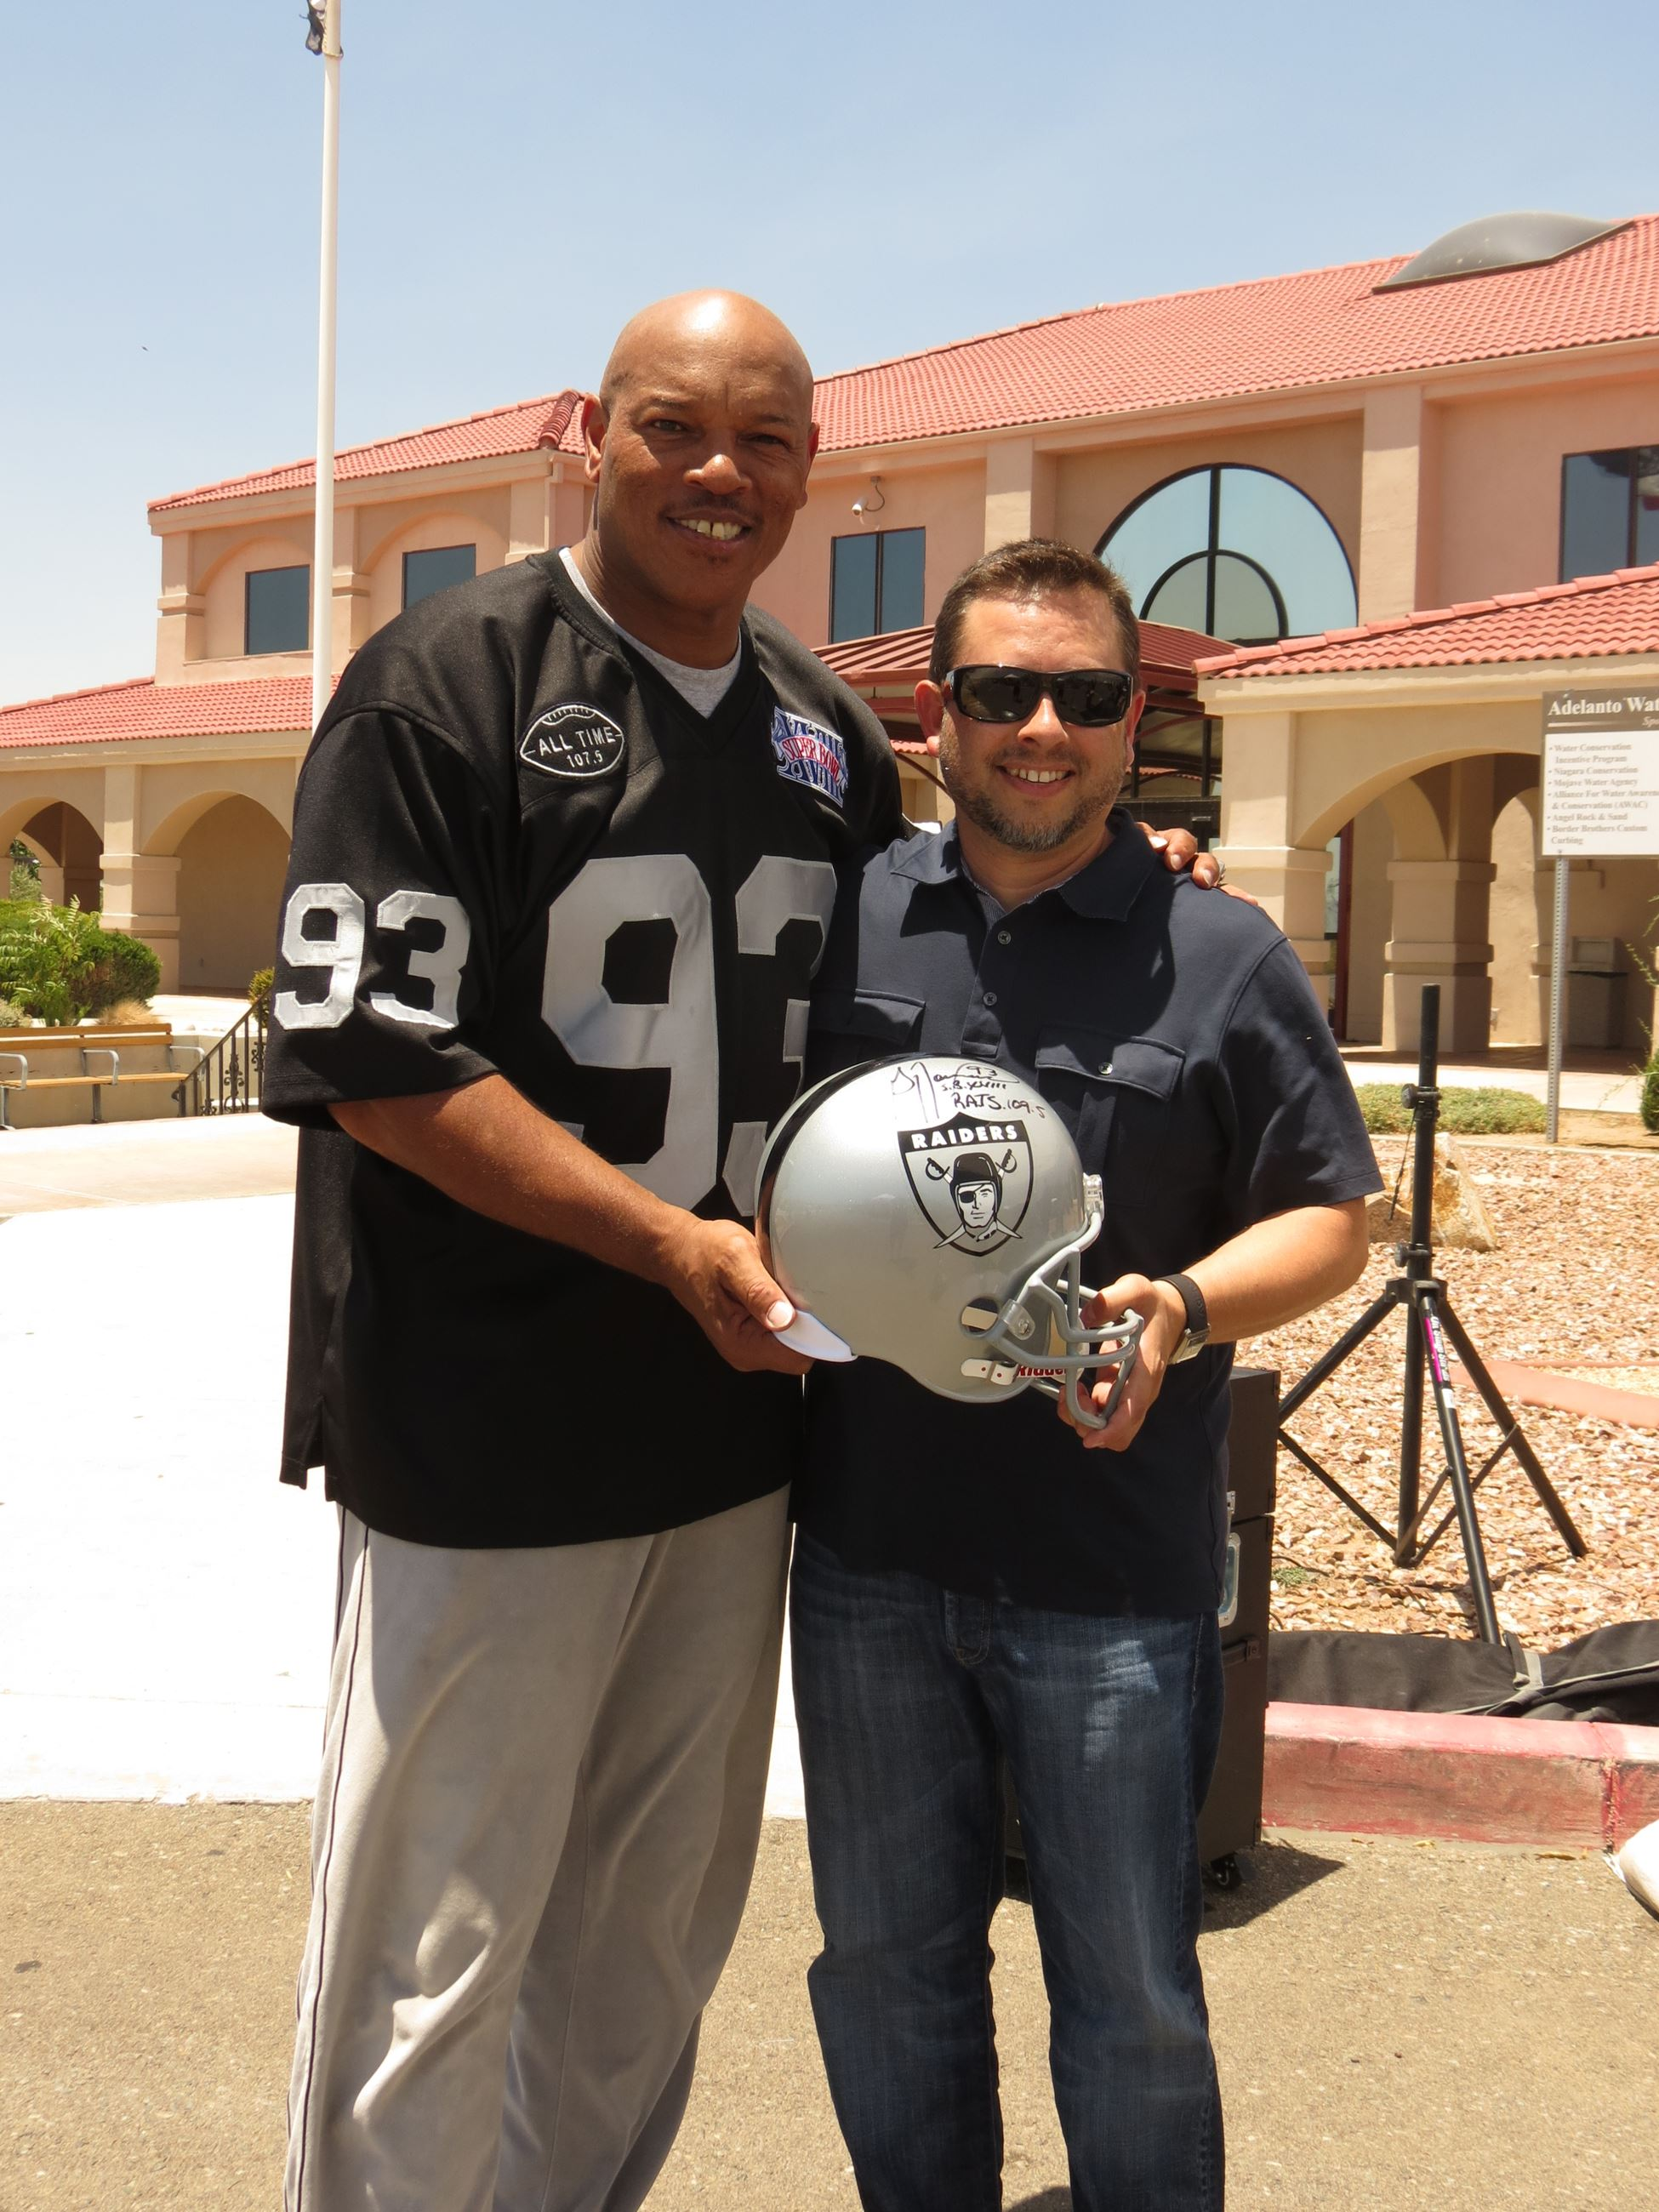 Two men holding a Raiders Football helmet